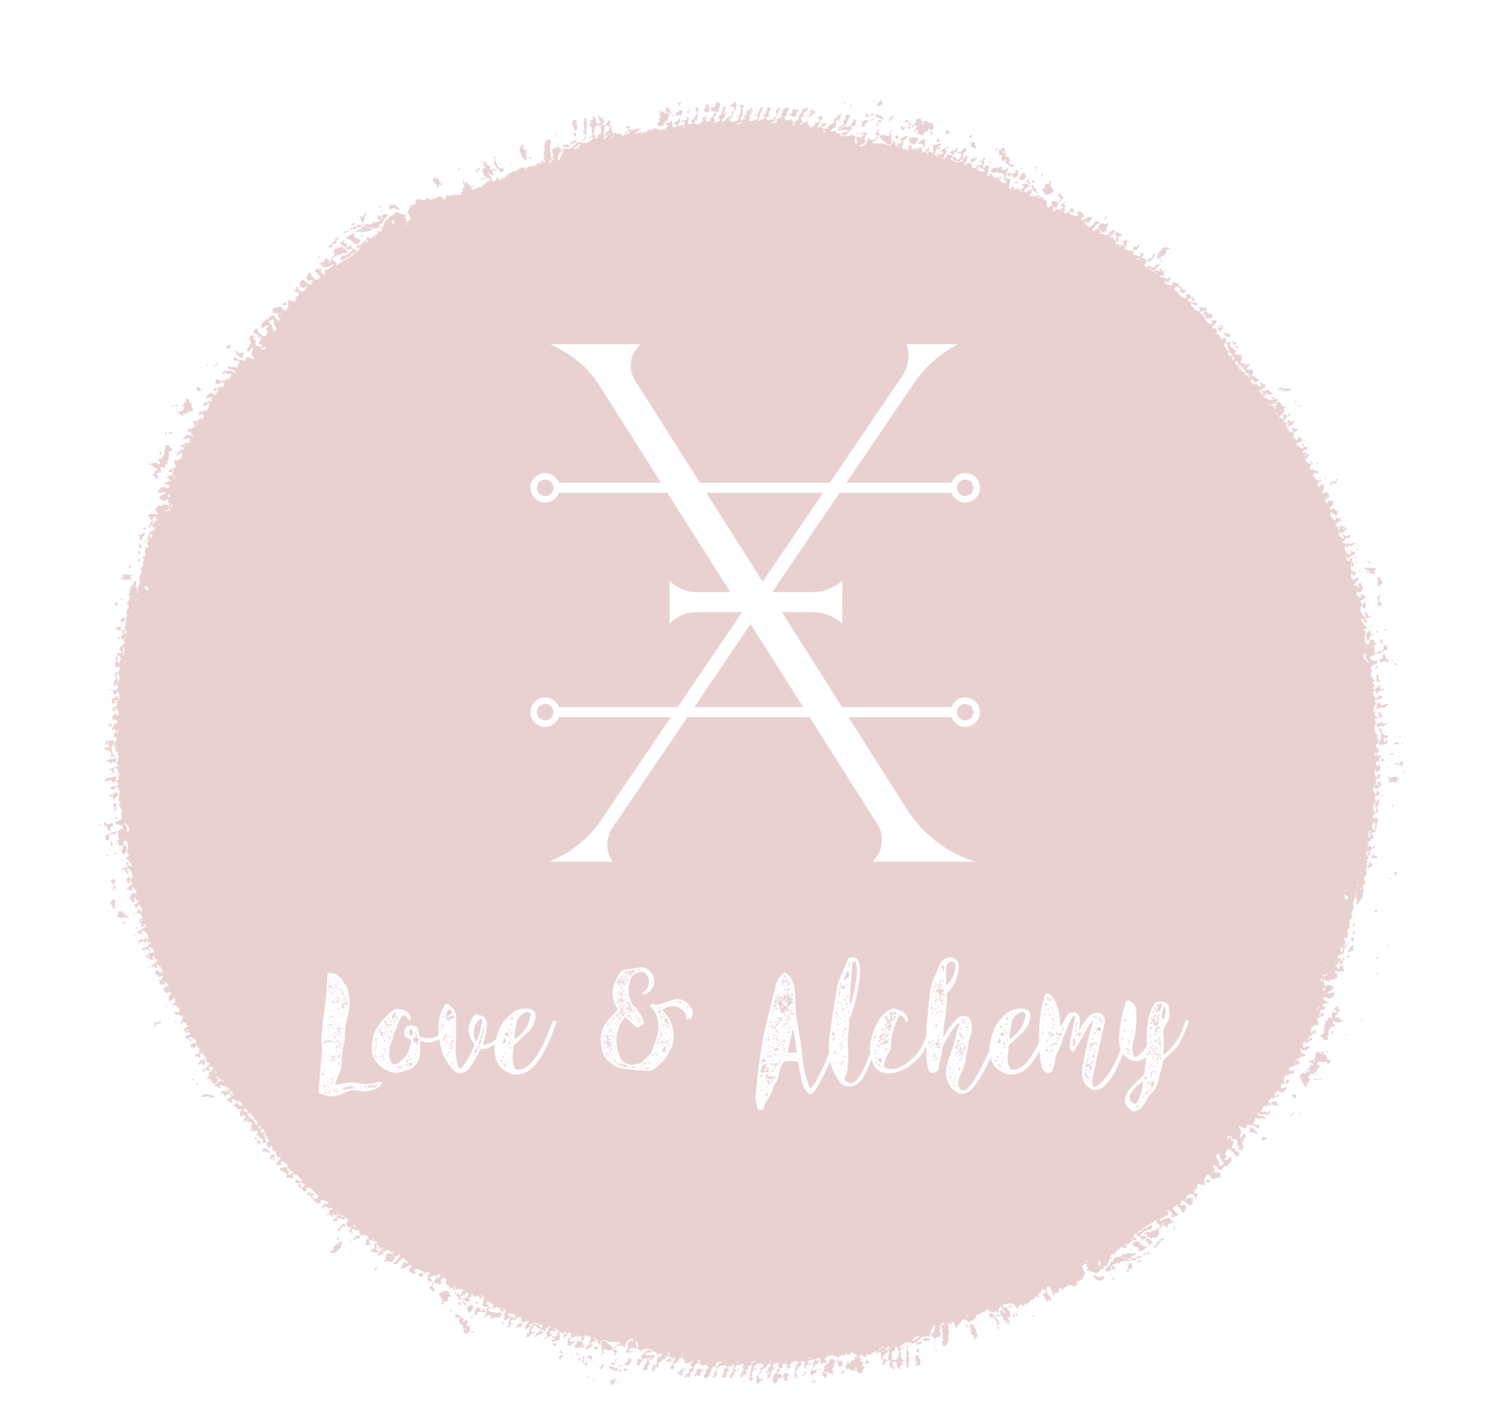 Love & Alchemy